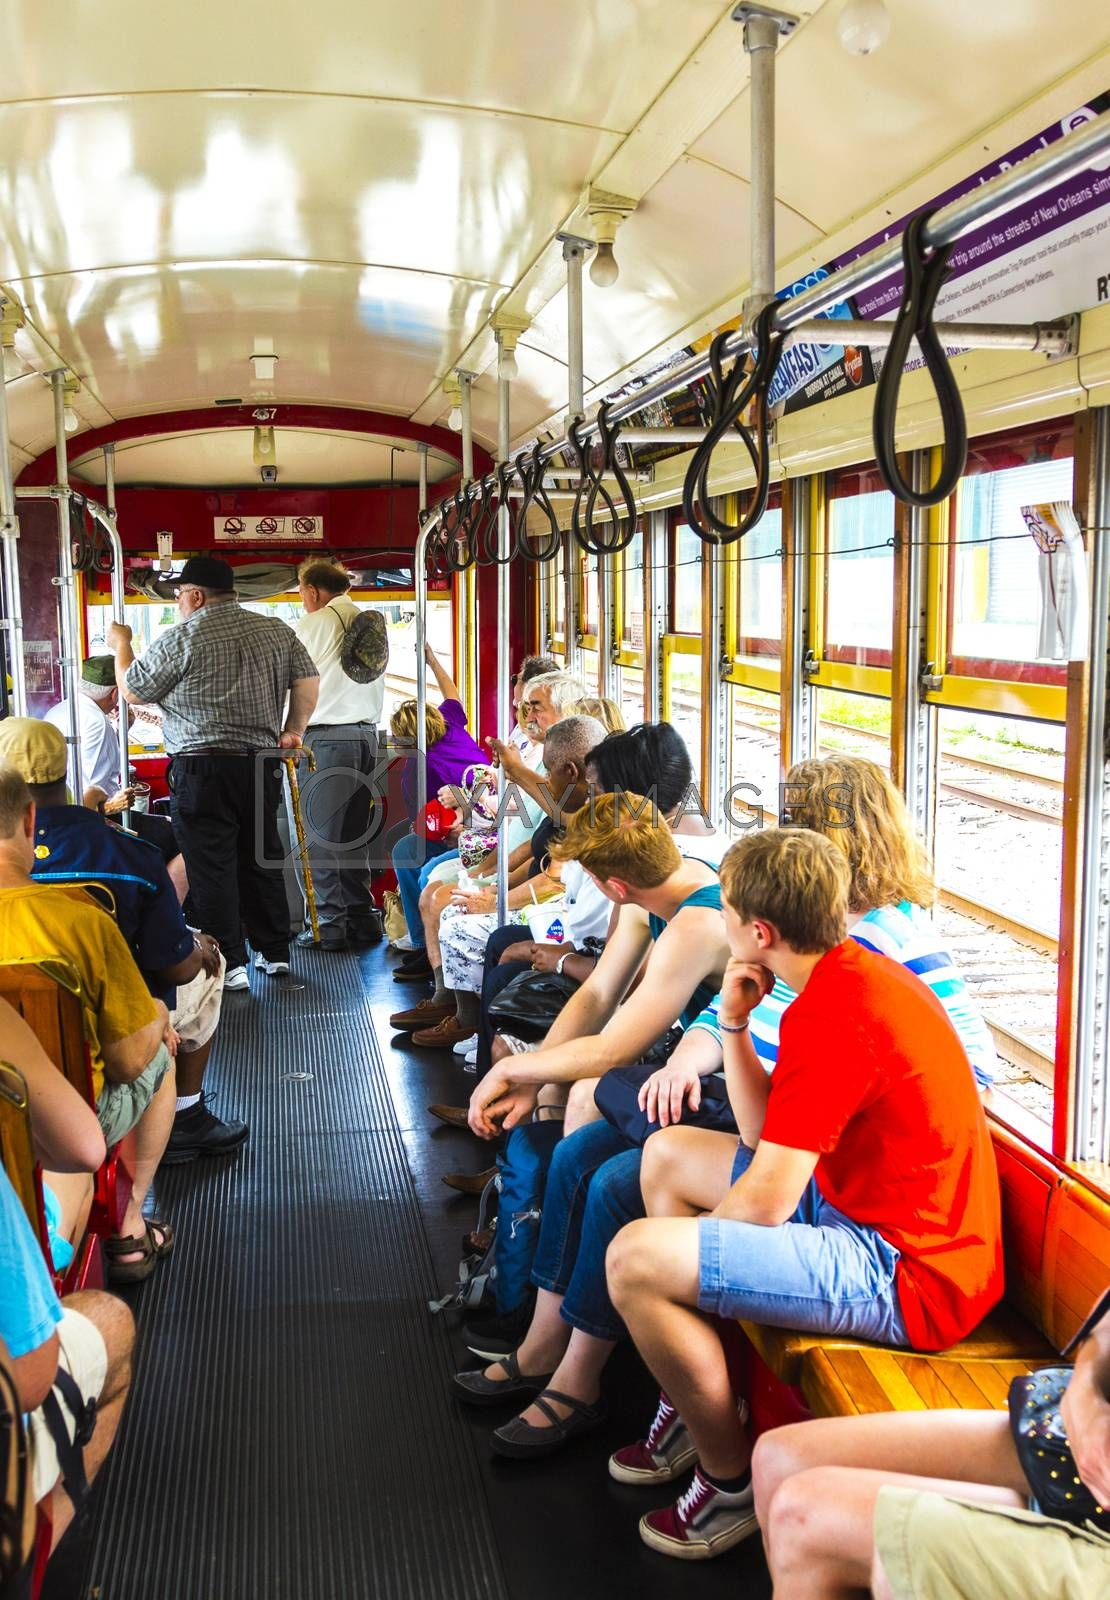 NEW ORLEANS - JULY 15, 2013: people travel with the famous old Street car St. Charles line in New Orleans, USA.  It is the oldest continually operating street car line in the world.